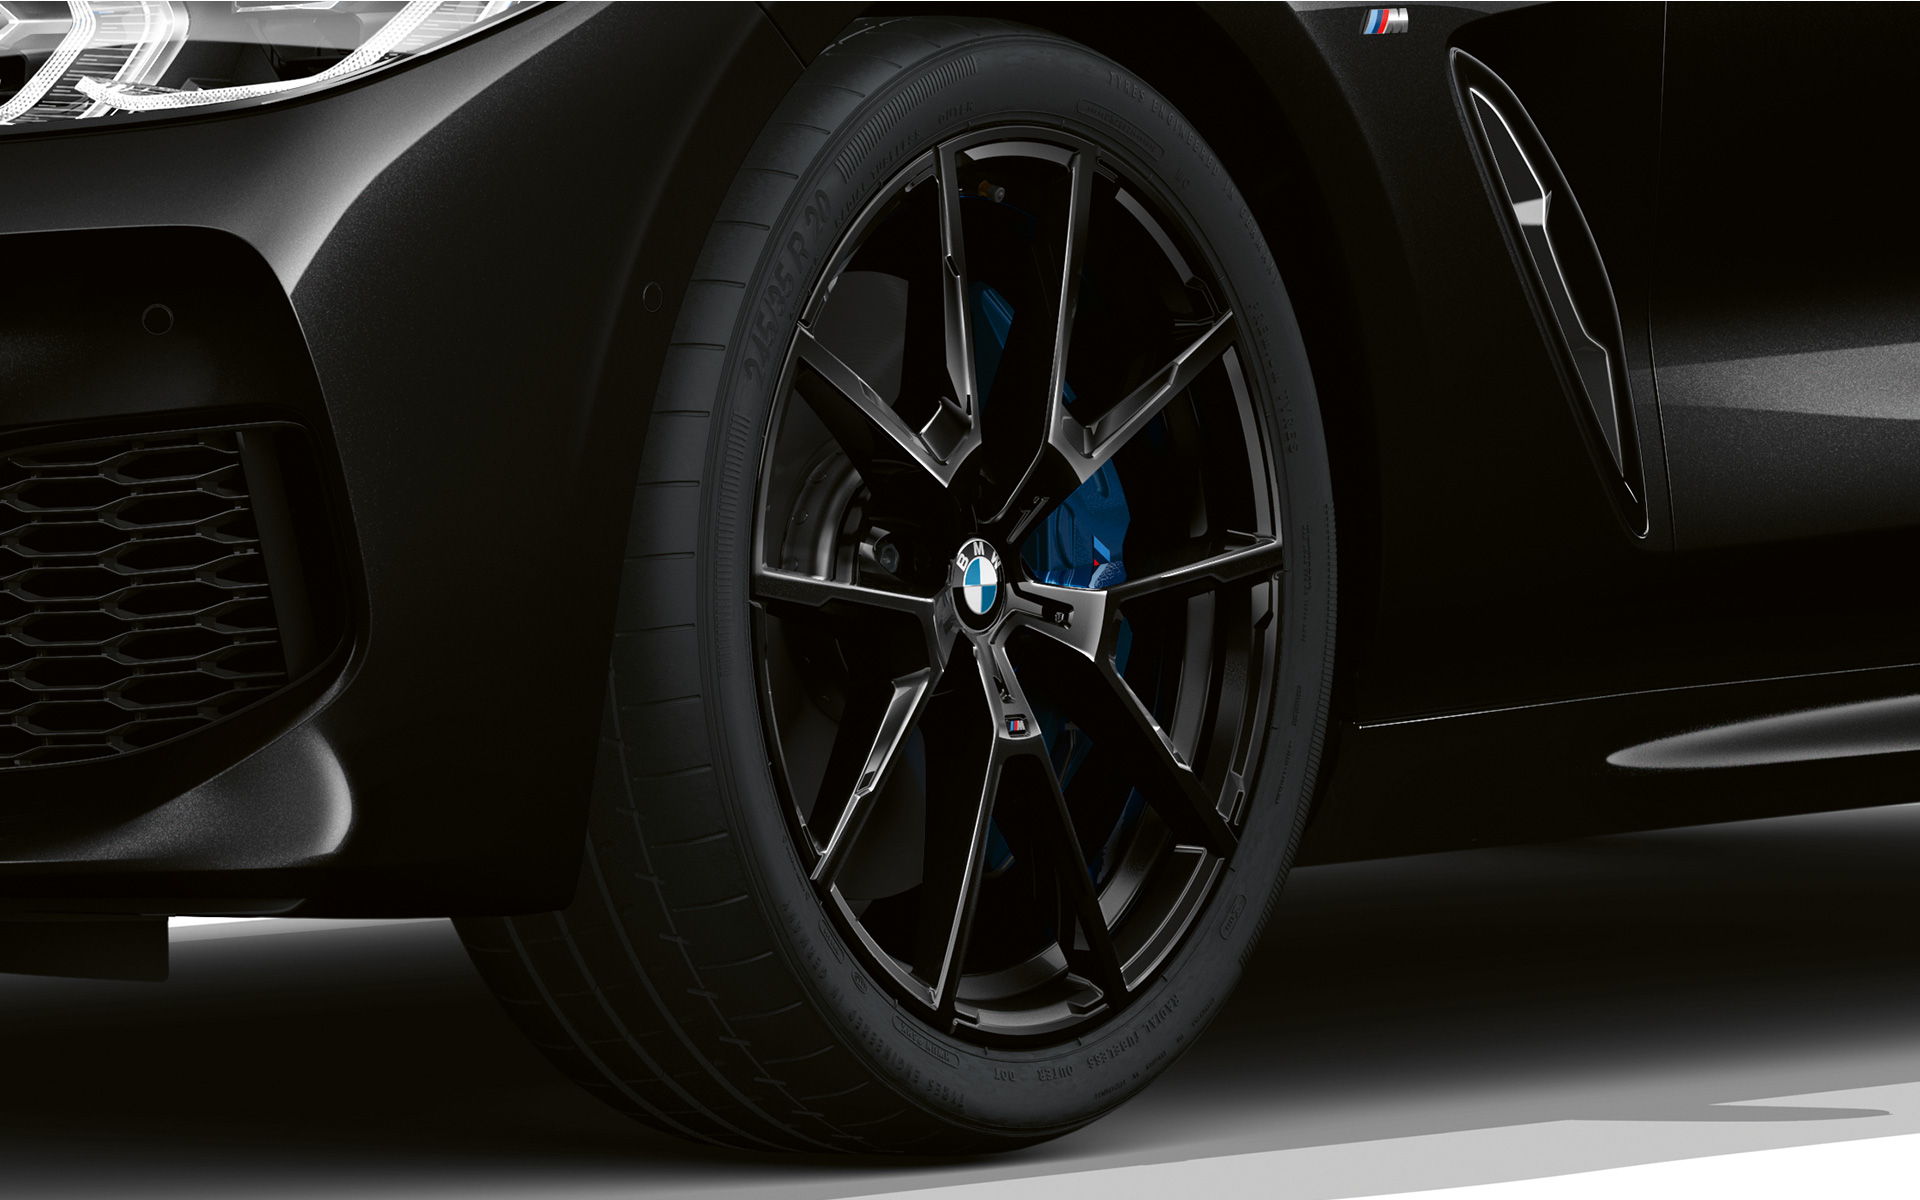 BMW Serie 8 Gran Coupé, llantas Dark Seduction